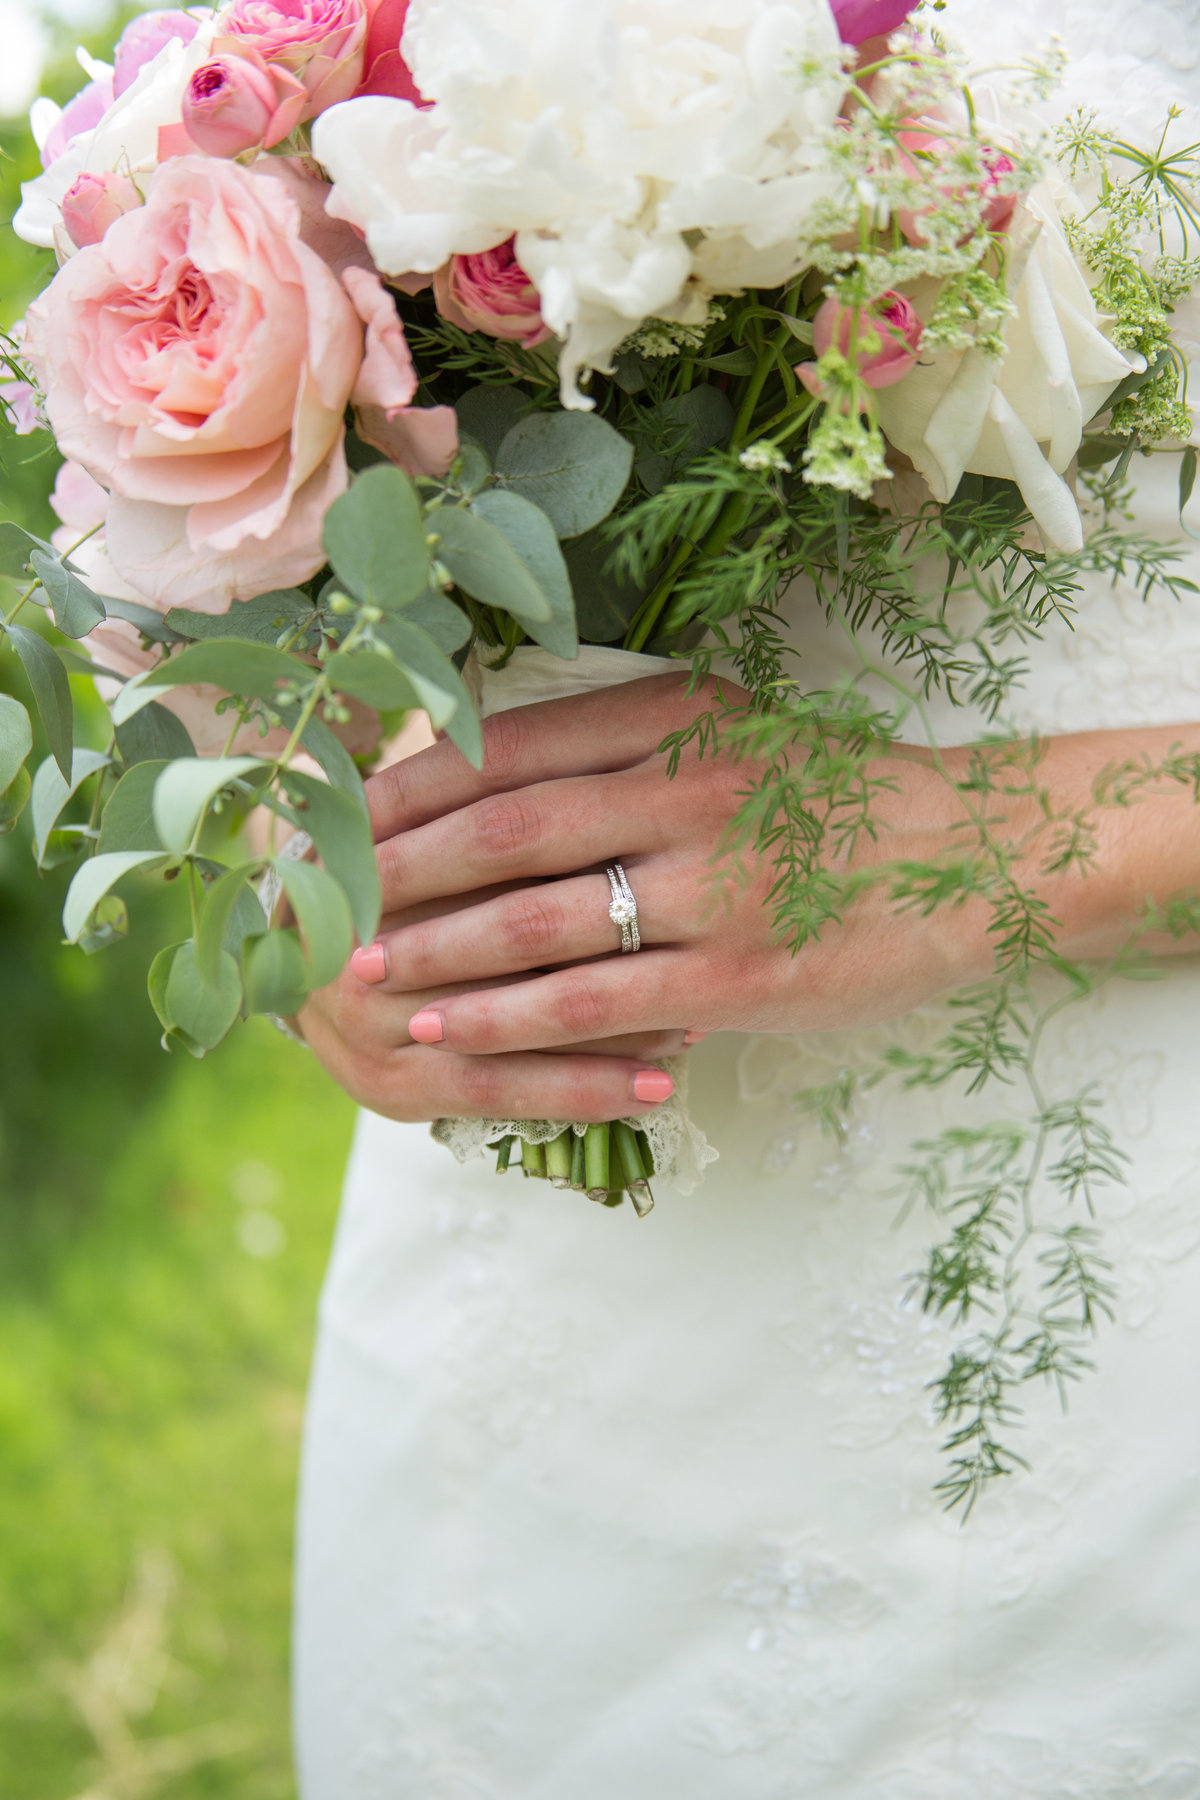 detail photo of bride's ring and bouquet at vintage inspired wedding